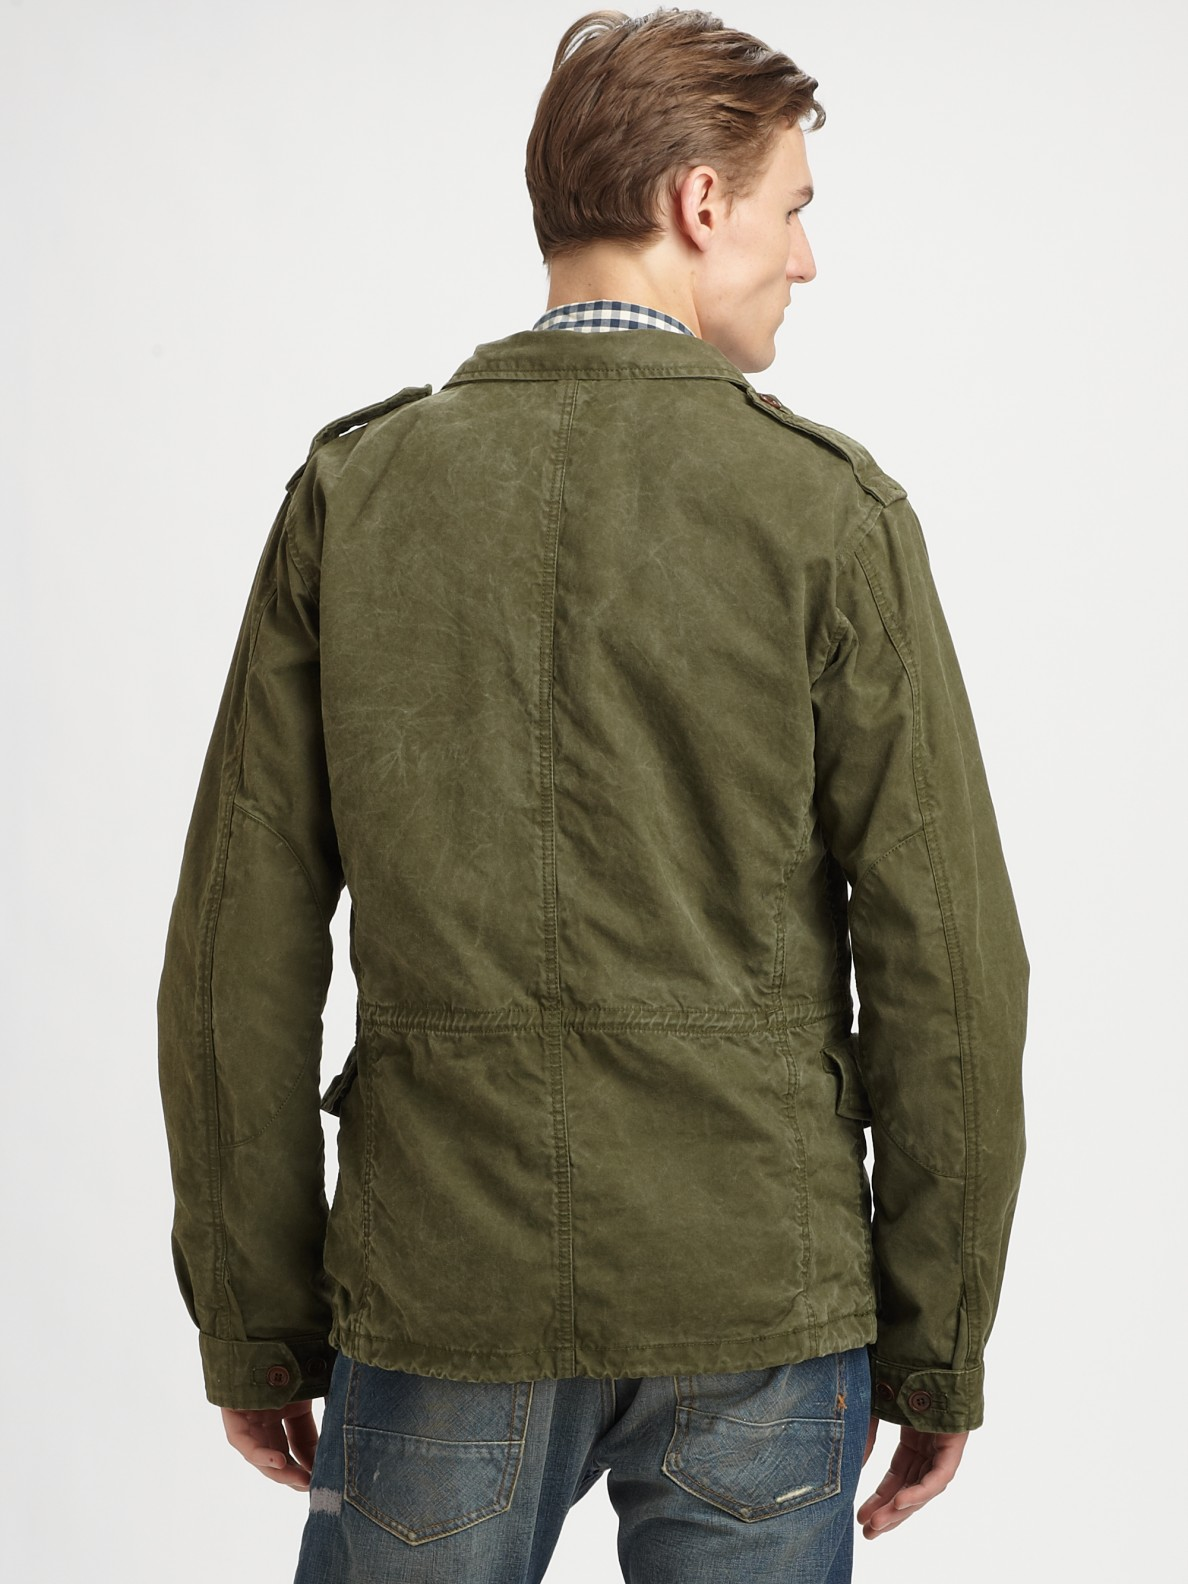 Lyst amp; Scotch Military Soda For Men Green Jacket 0AzqwB0a